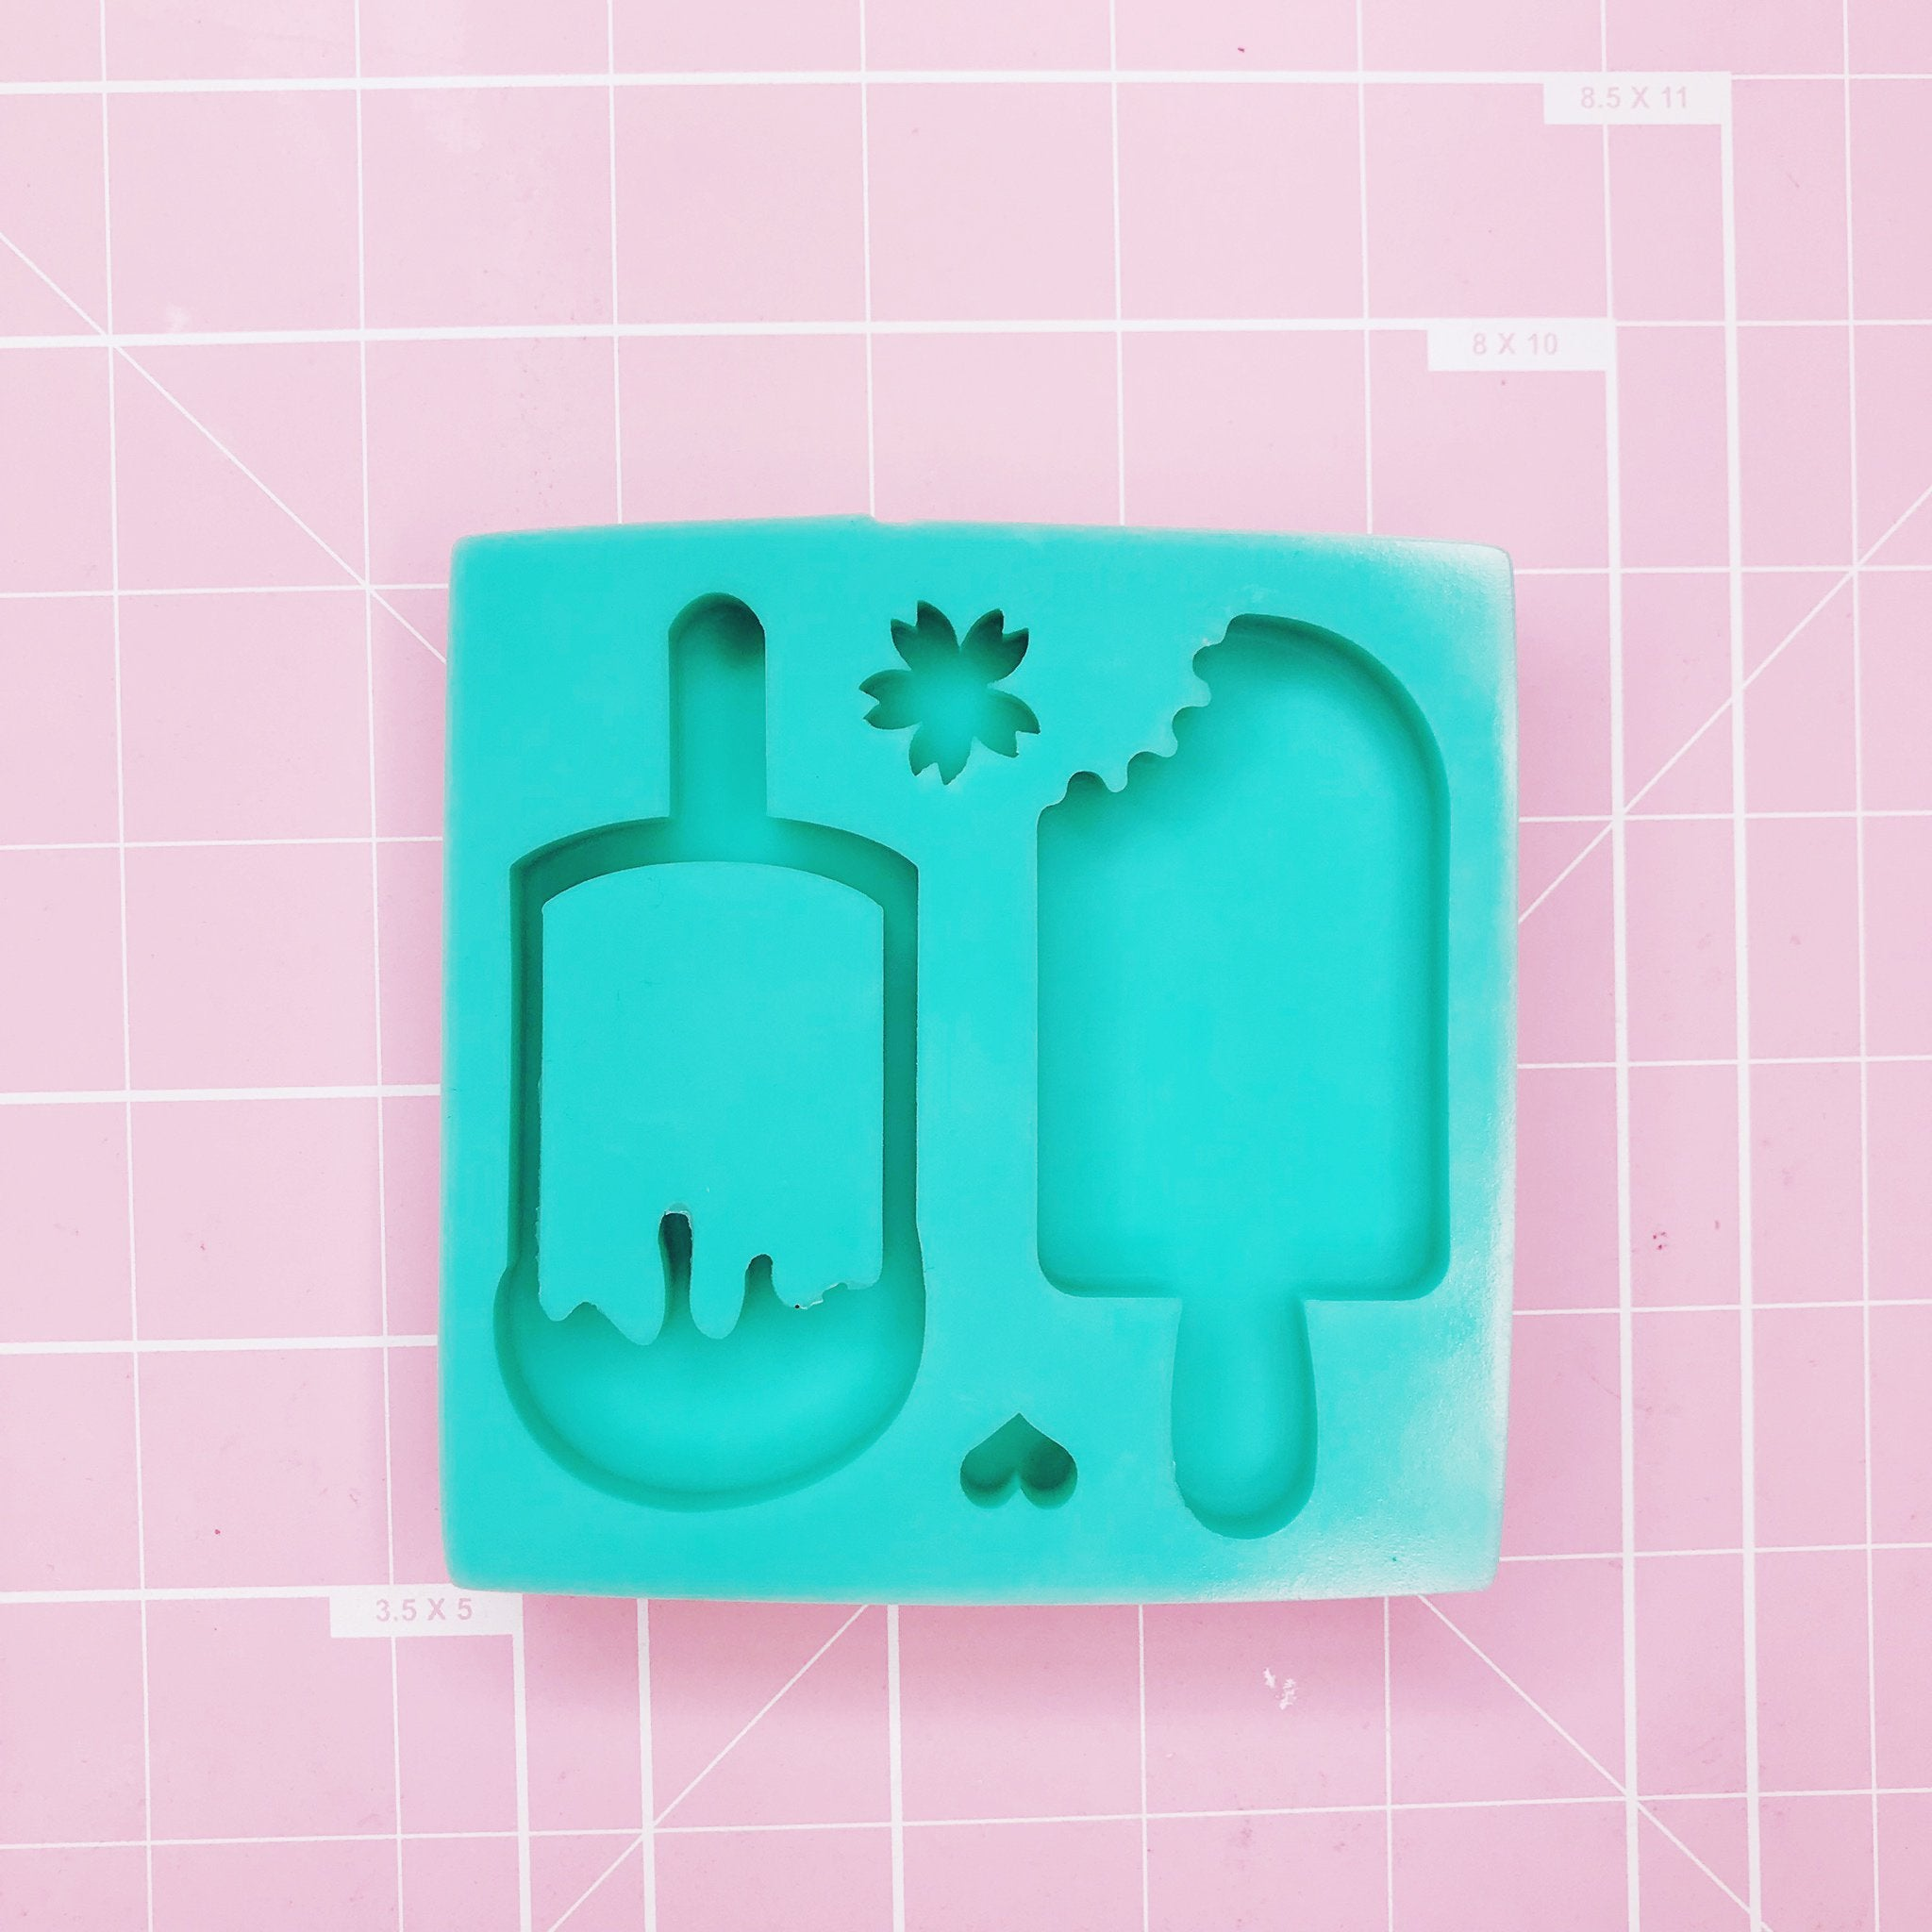 Medium Square Mold - Pop / Pop Shaker (Sakura/heart) - Chala Atelier & Supplies